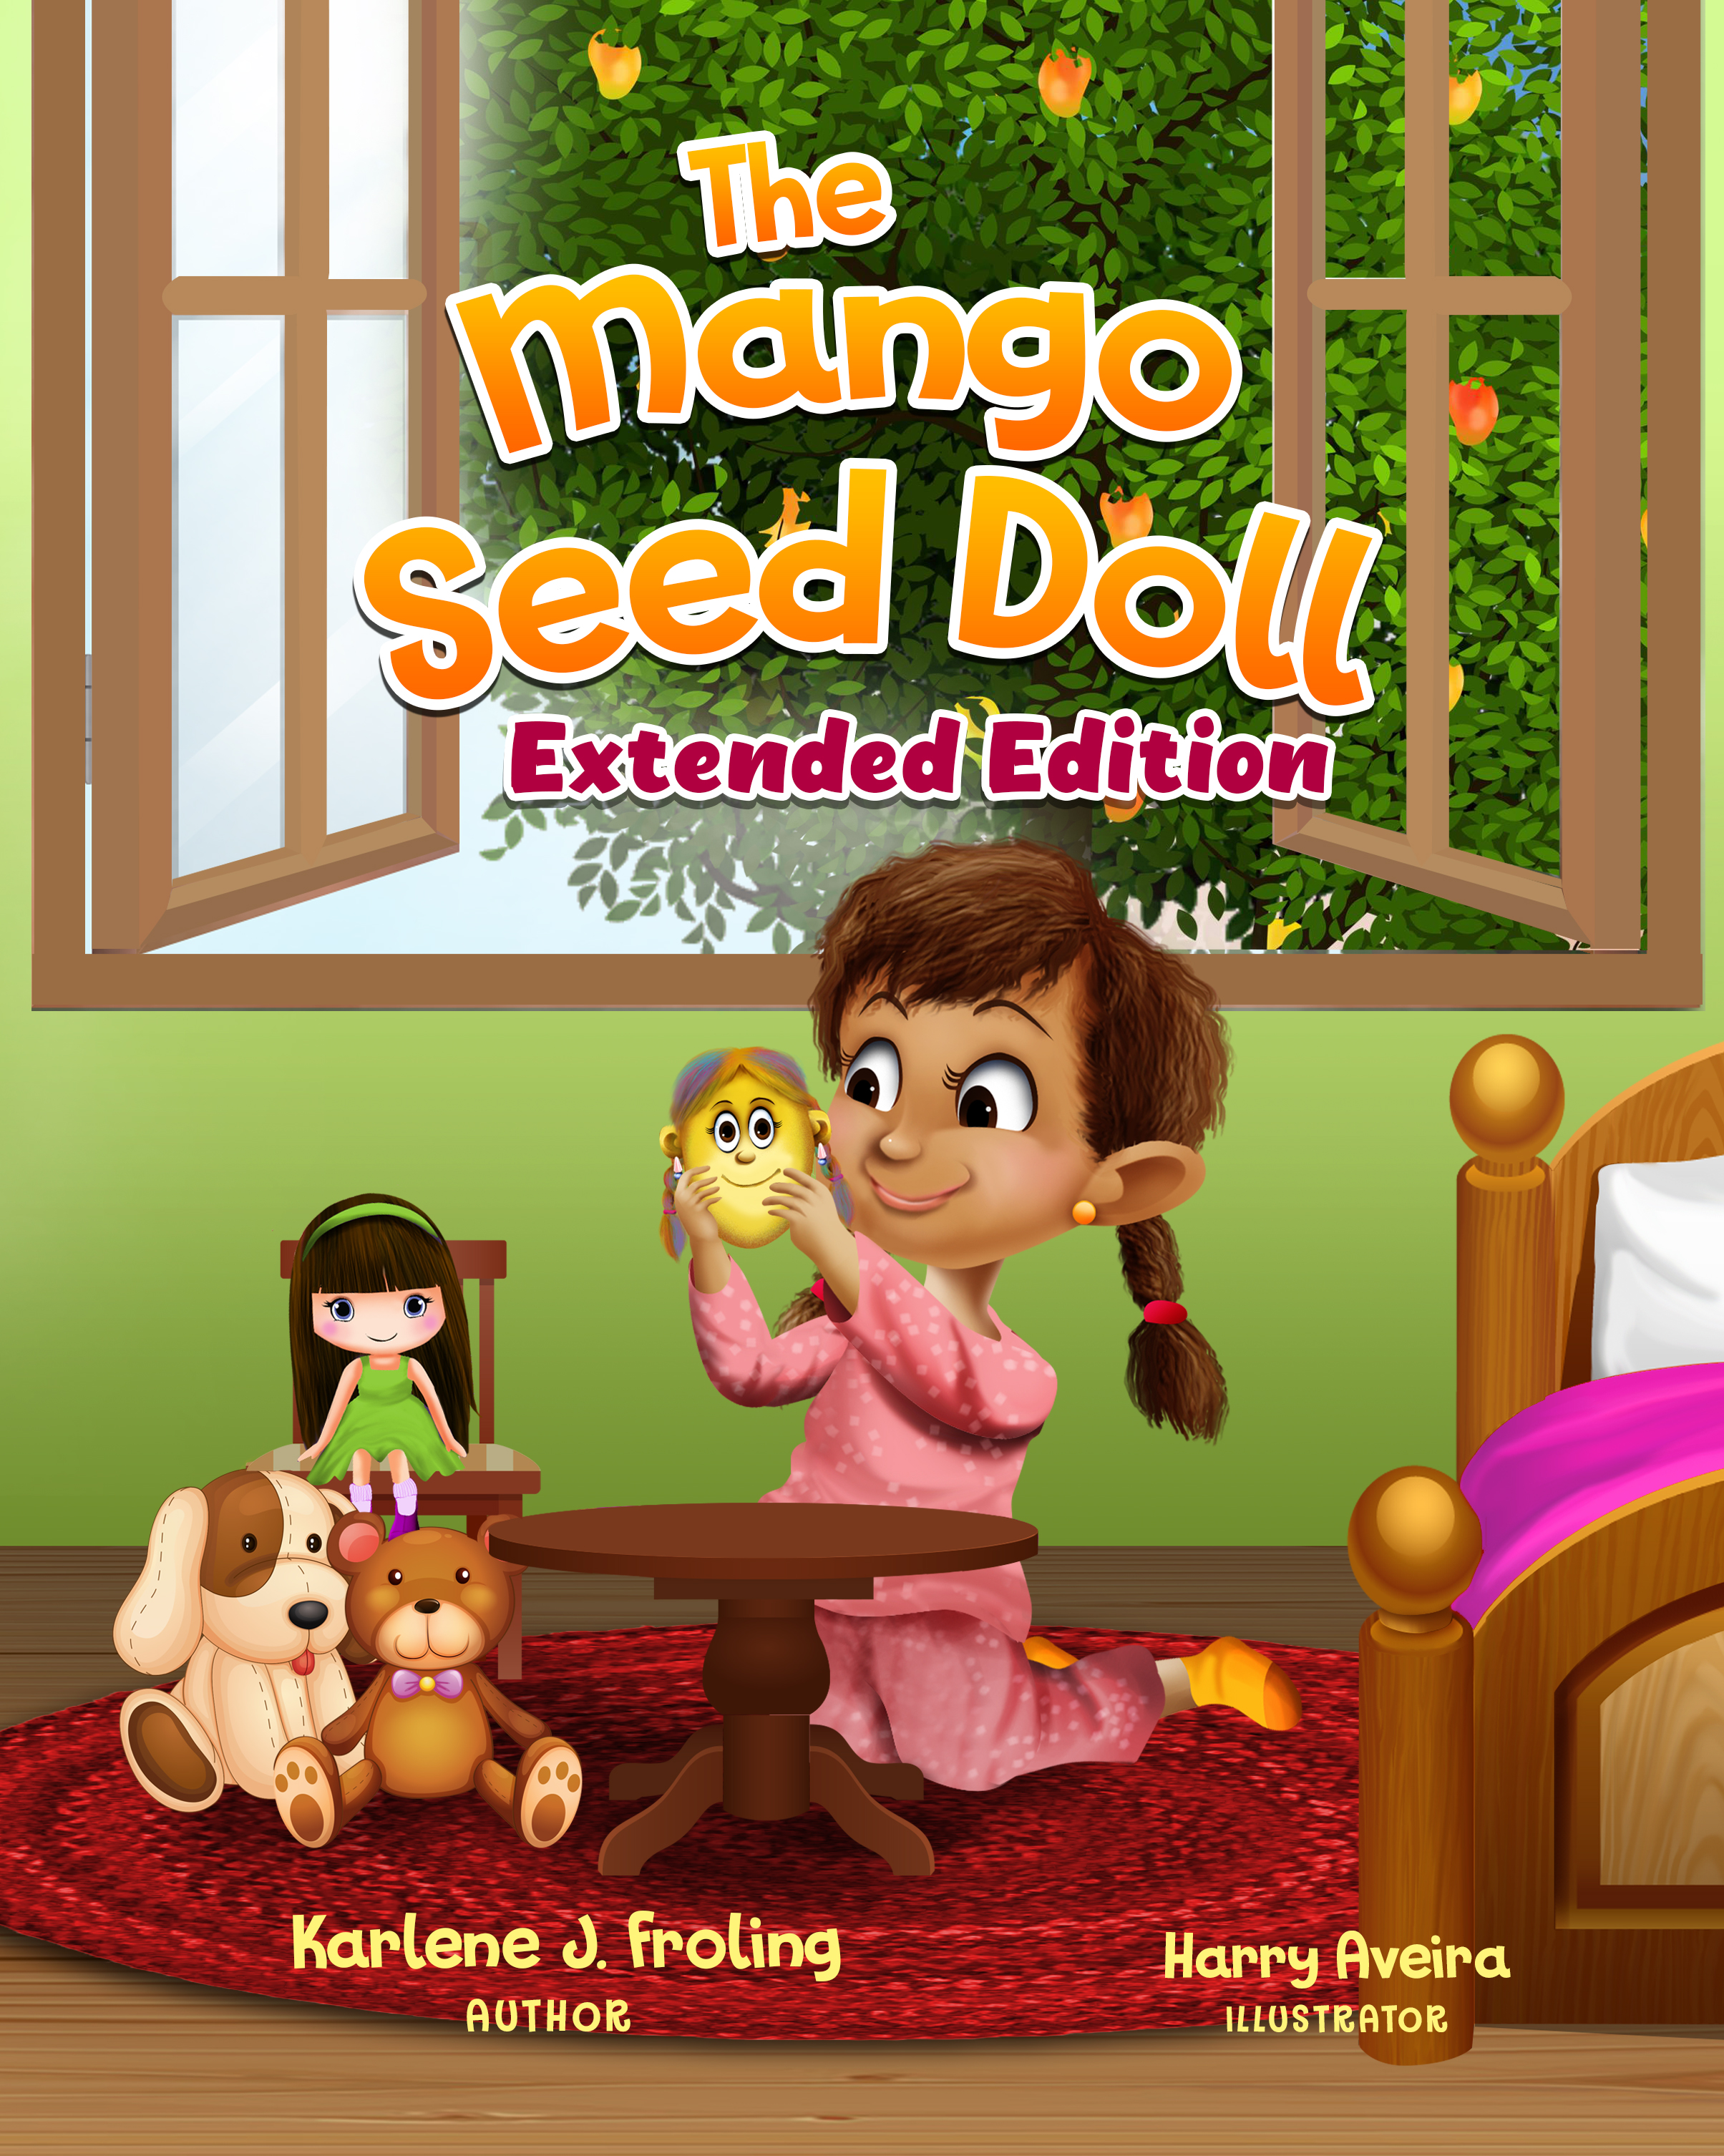 The Mango Seed Doll Extended Edition